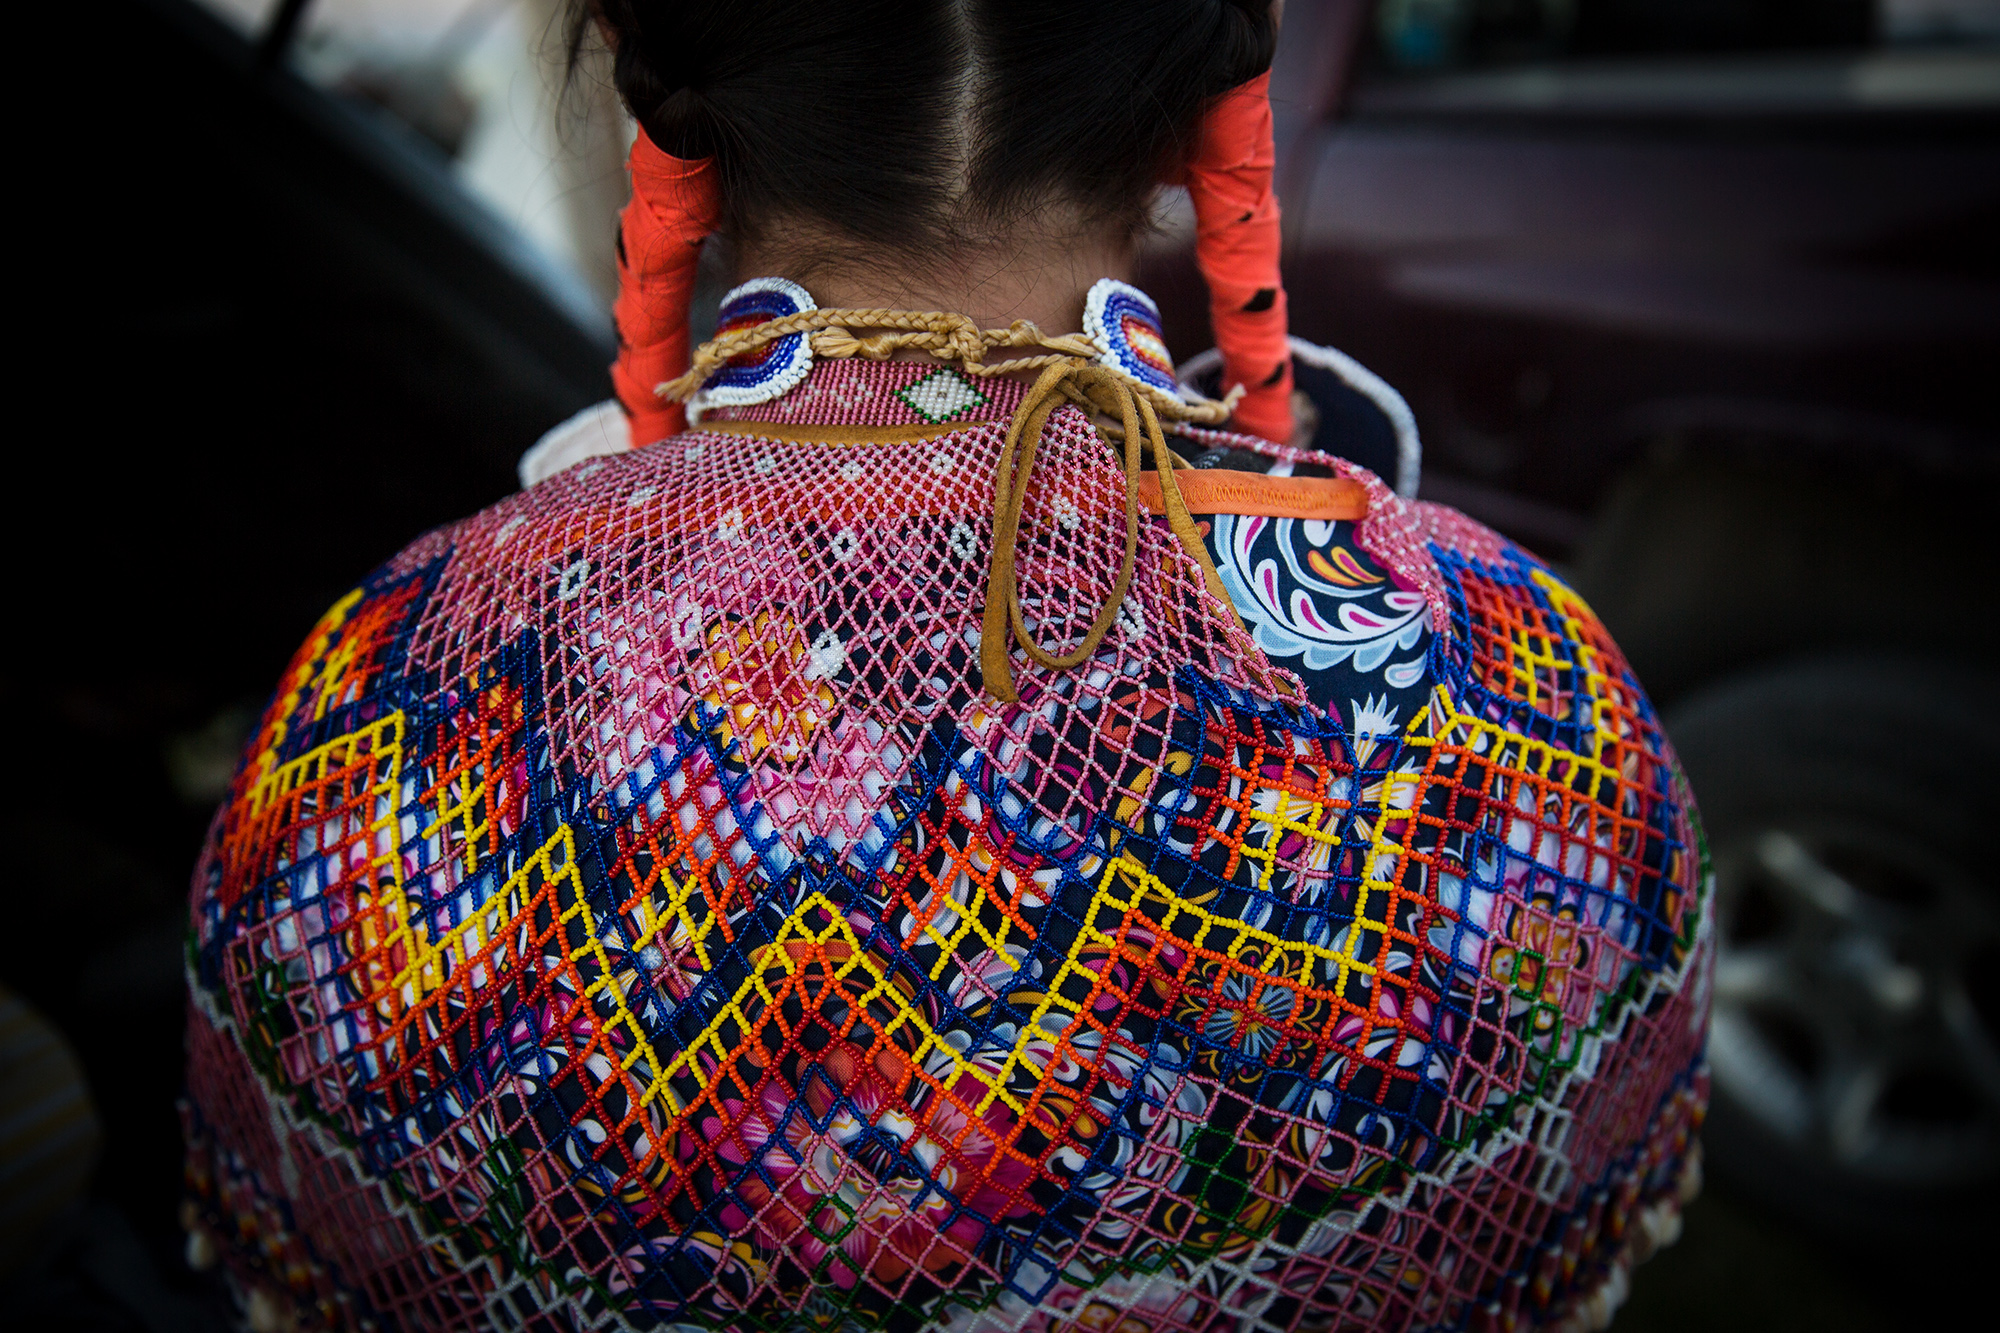 Intricate bead work adorns a young woman at North American Indian Days in Browning, Montana.